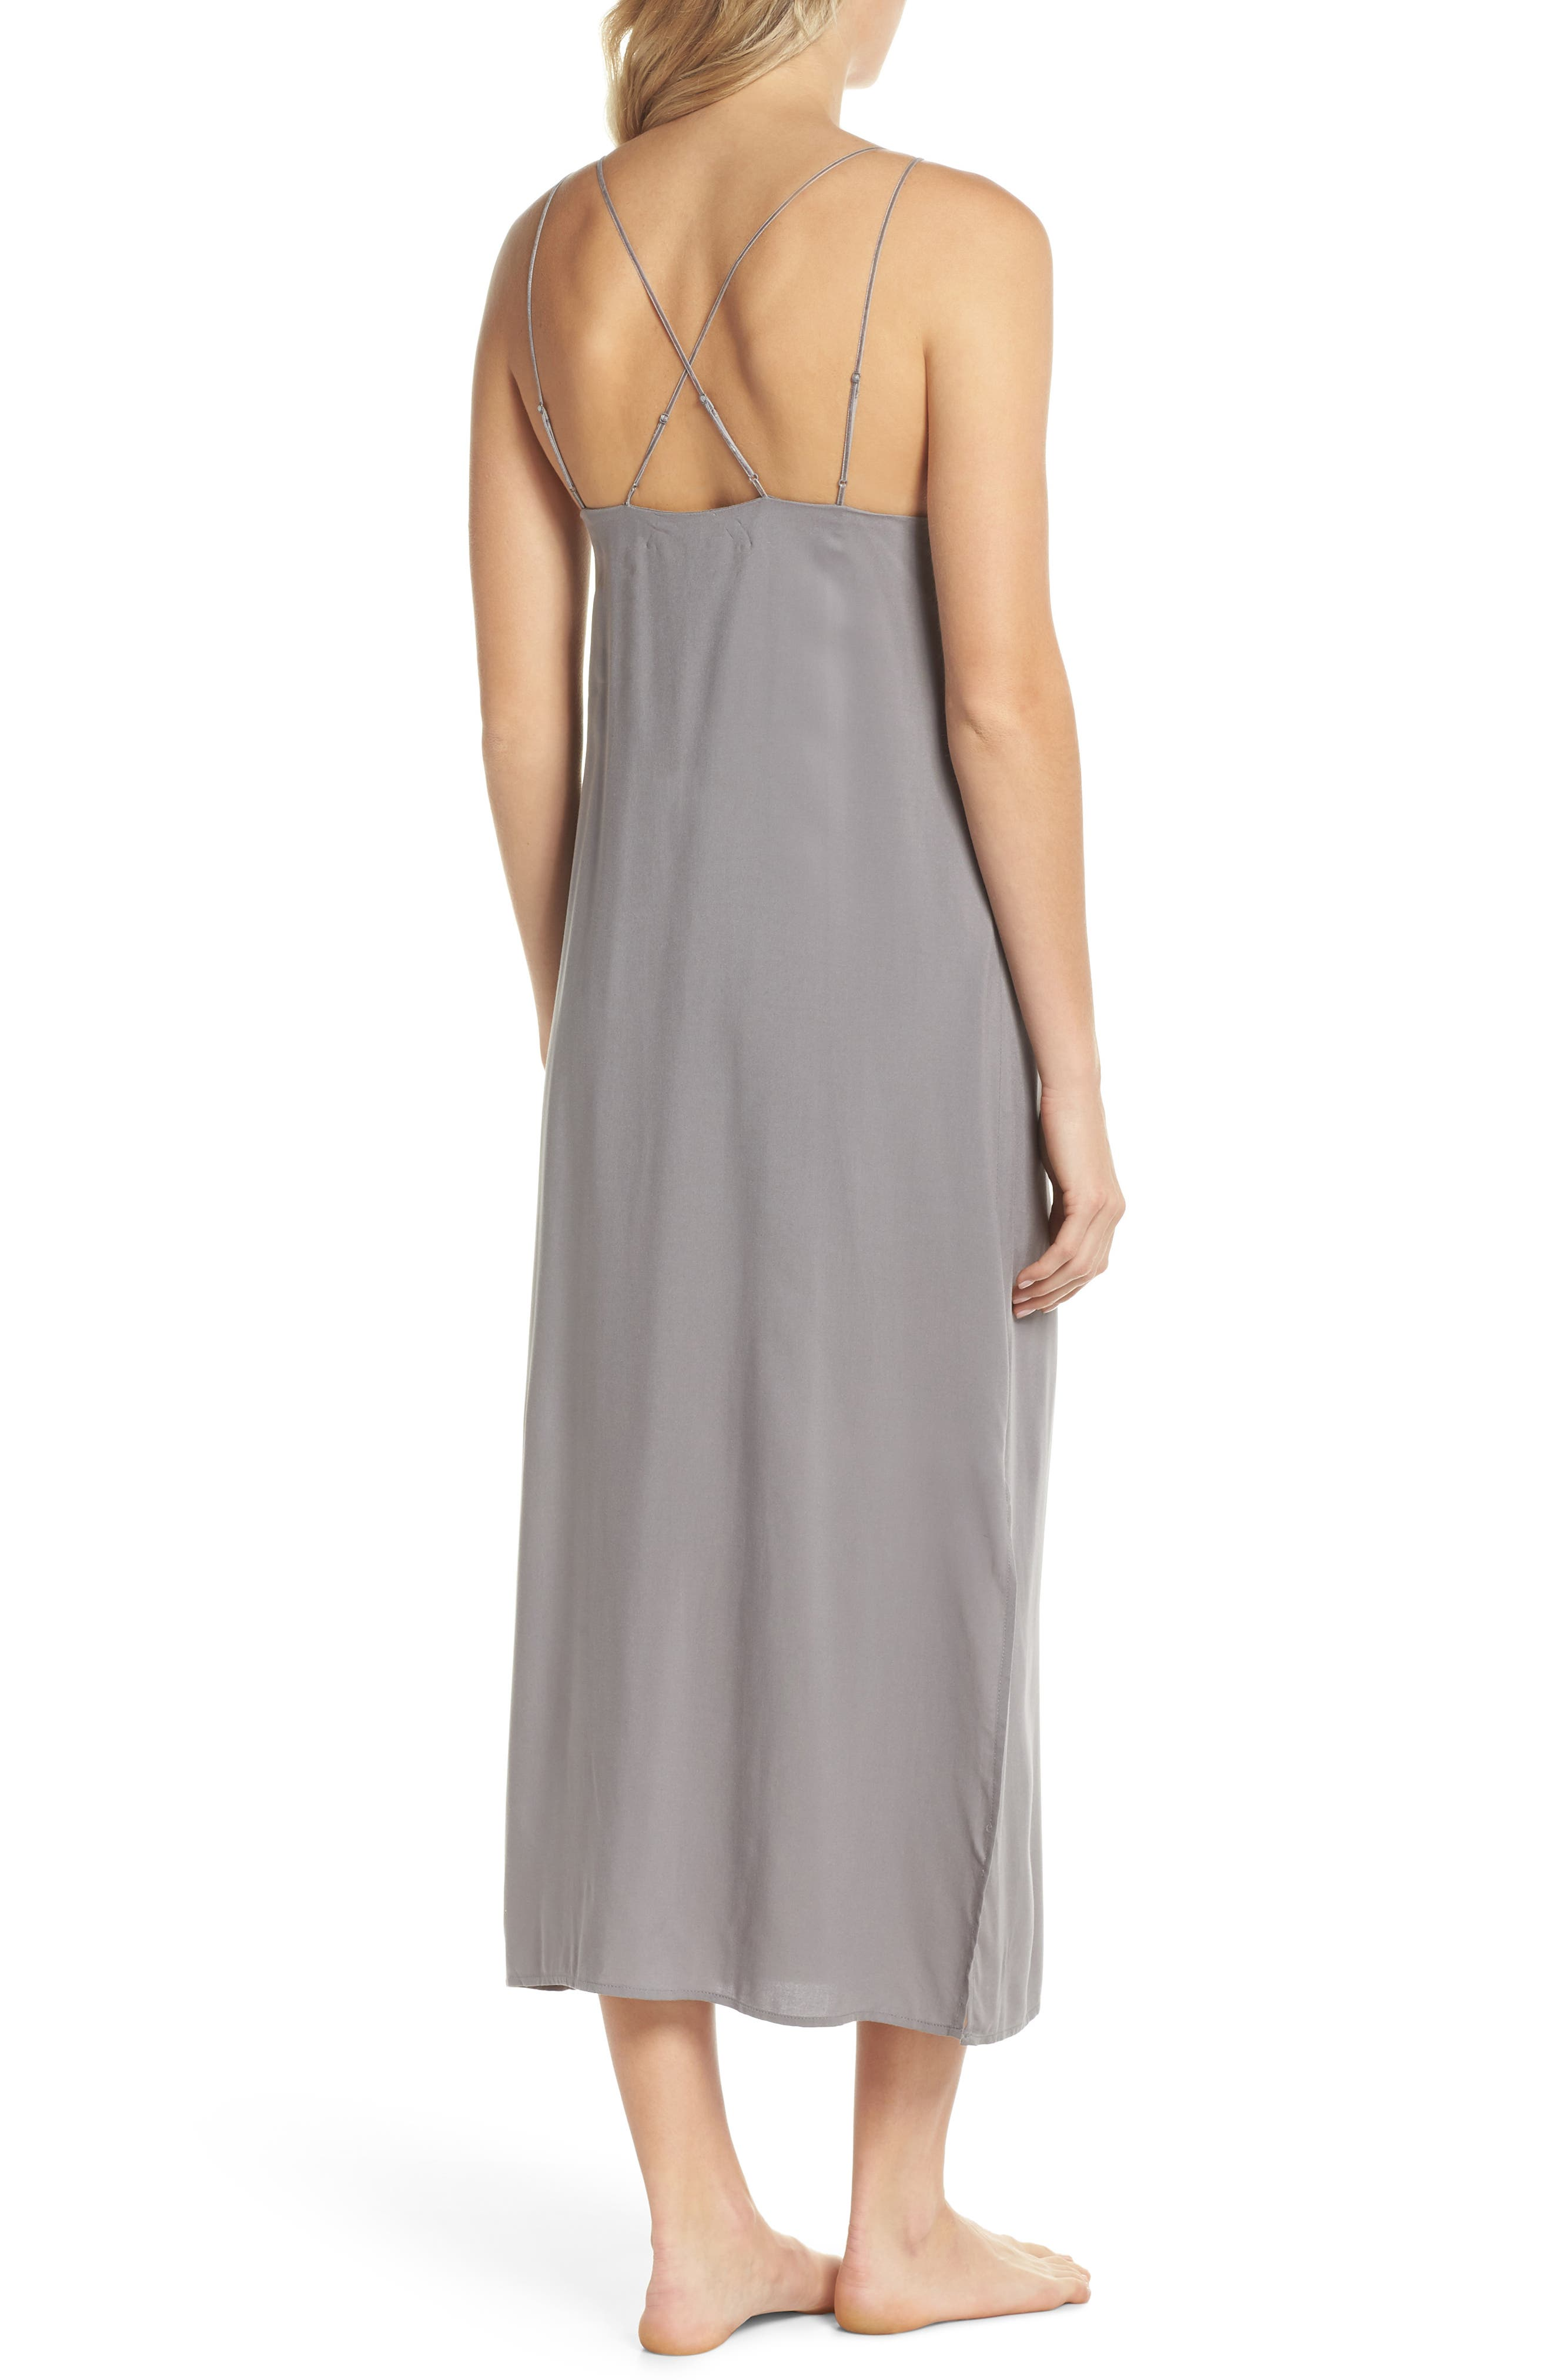 Strappy Nightgown,                             Alternate thumbnail 2, color,                             Aerial Gray